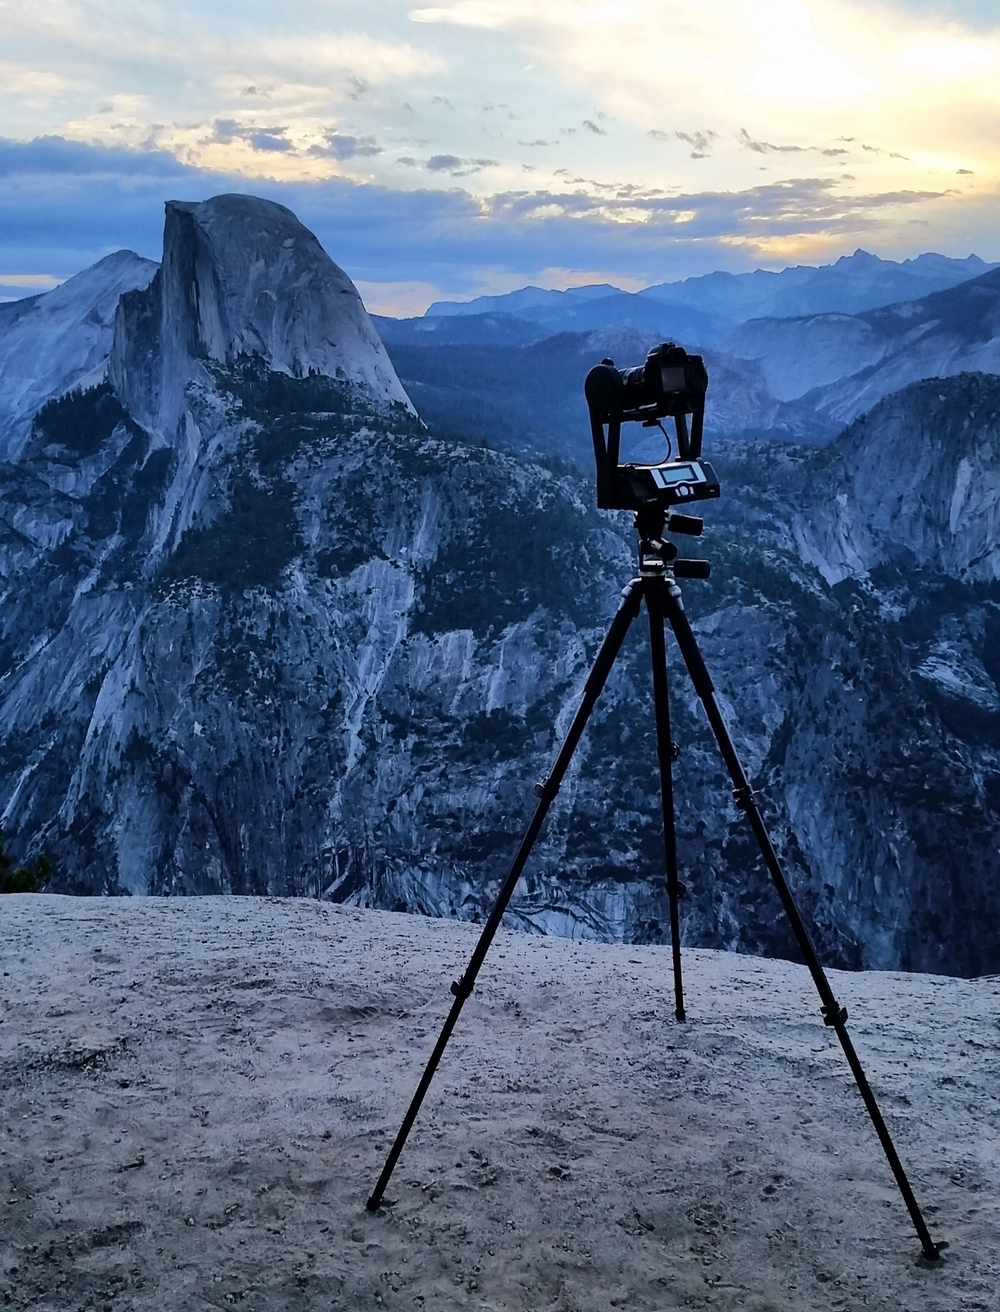 I use a Gigapan Epic Pro as my tripod head which helps automate the shooting process.